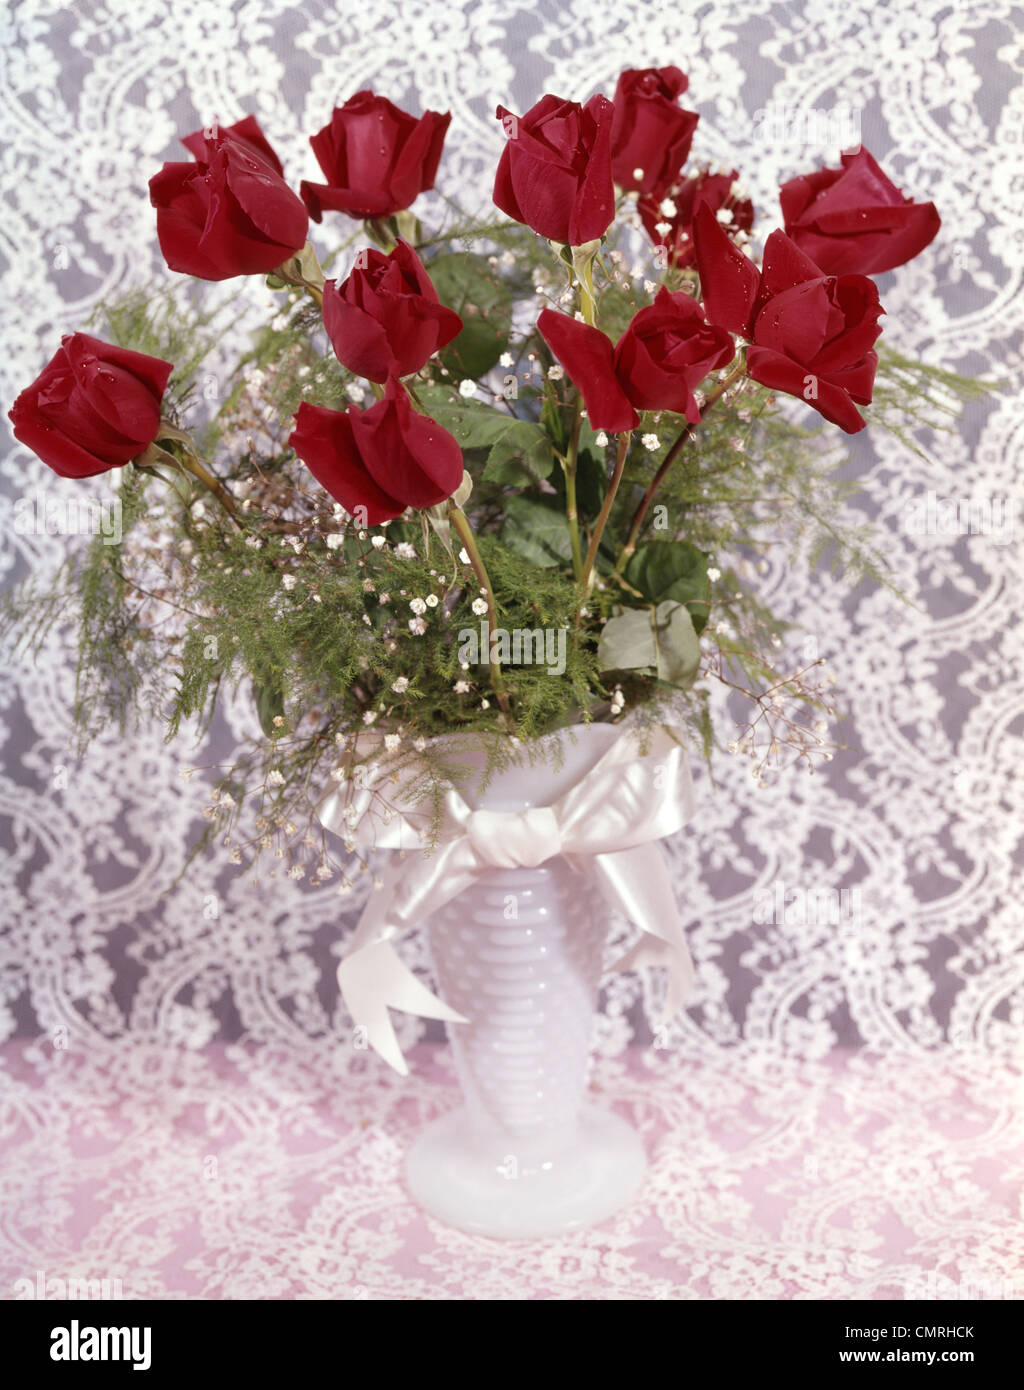 1960s 1970s STILL LIFE BOUQUET OF RED ROSES BABY'S BREATH IN WHITE VASE ON WHITE LACE - Stock Image